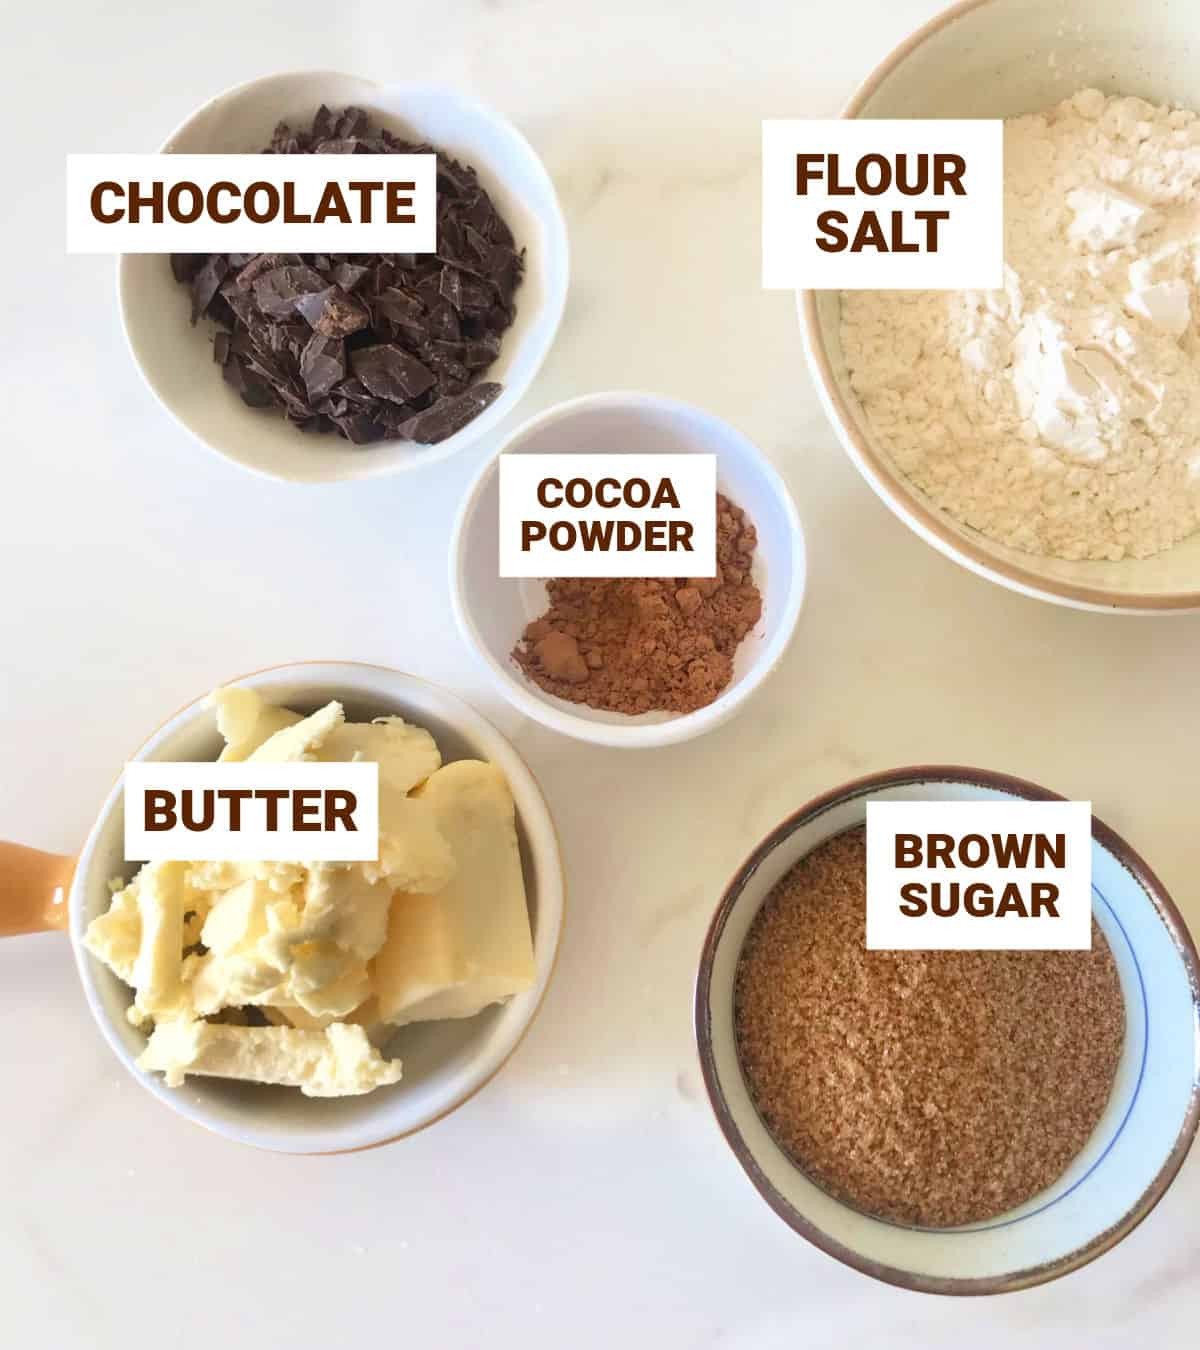 Chocolate crumble ingredients in different sized bowls on white surface